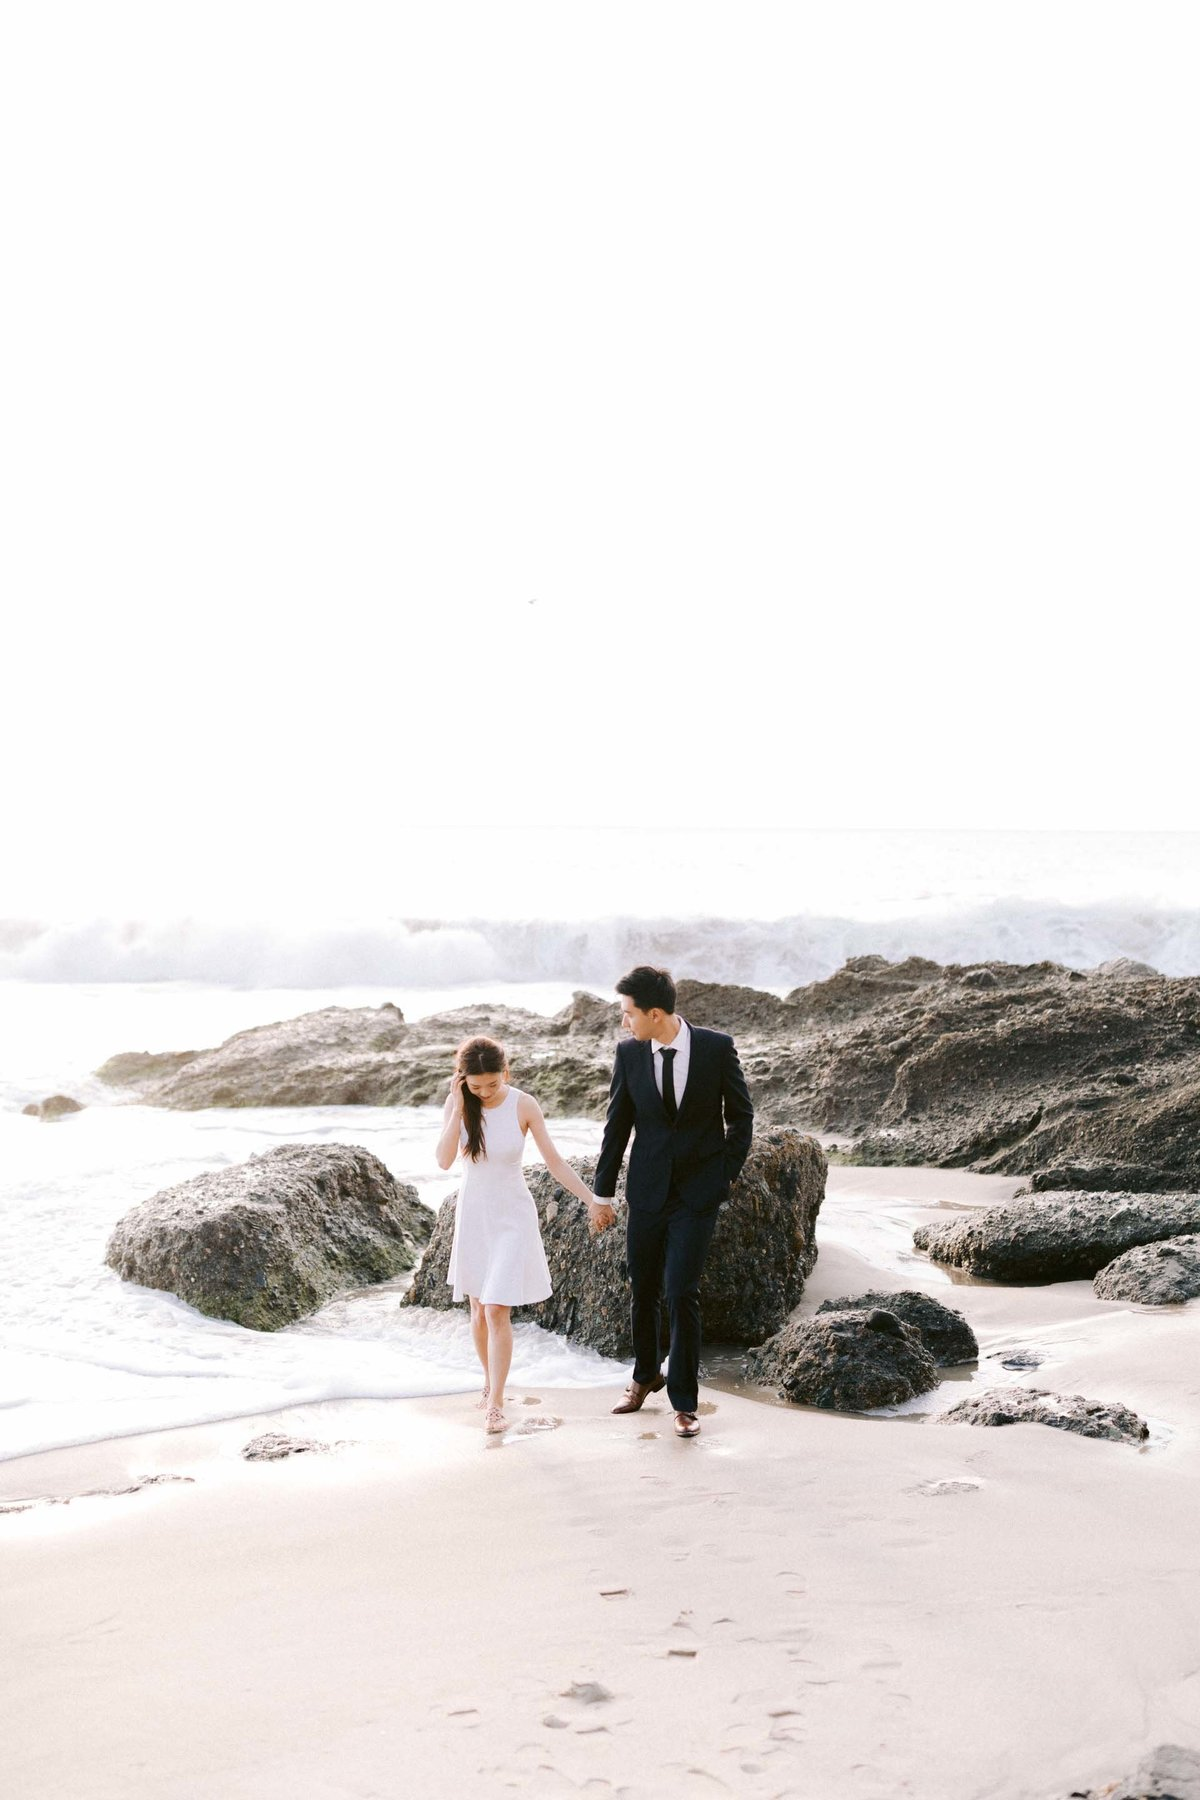 Laguna-Beach-Los-Angeles-Engagement-Photographer-11-DT